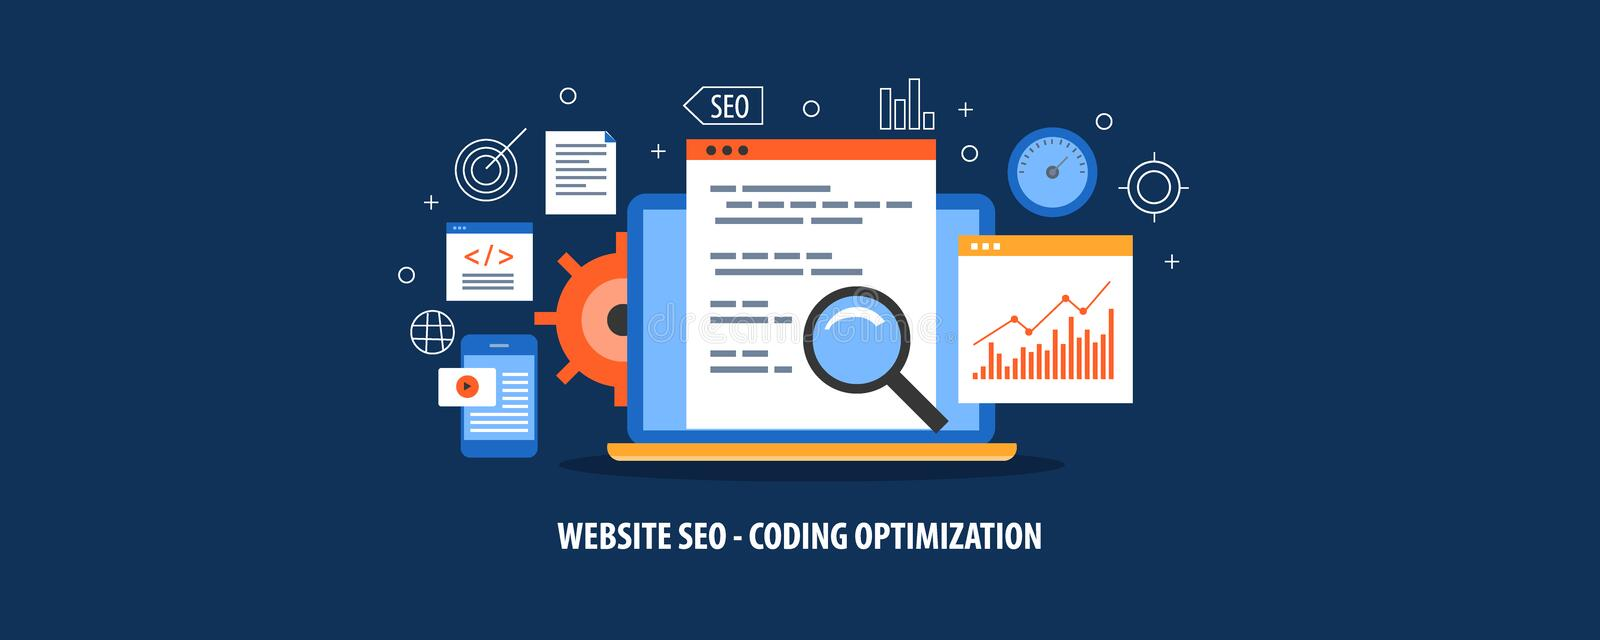 Seo Meta Tag Optimization Website Optimization For Better Search Ranking And Visibility Concept Flat Design Vector Banner Stock Vector Illustration Of Design Visibility 124115905